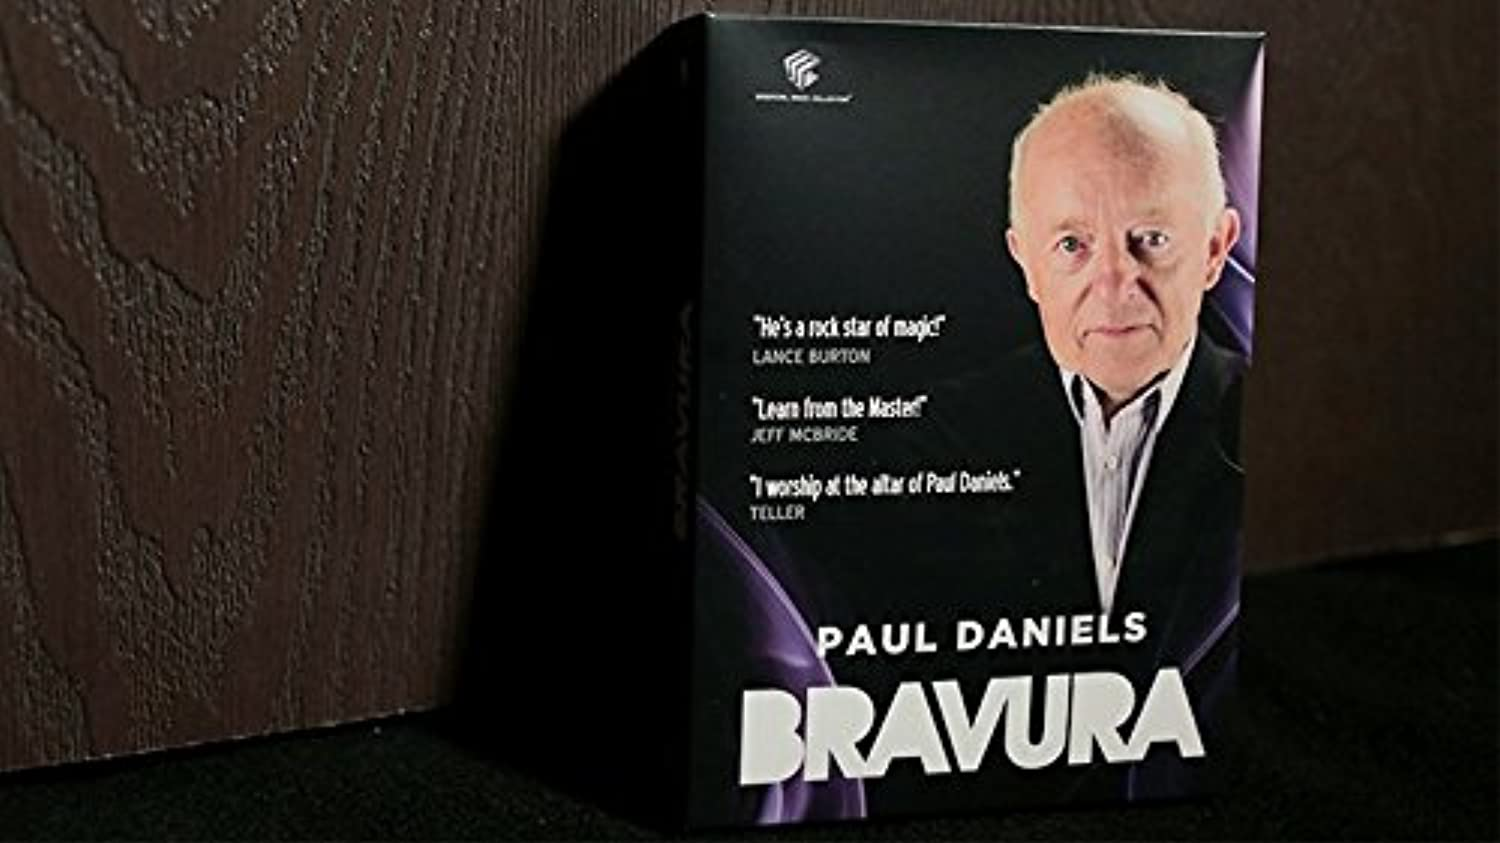 Bravura by Paul Daniels and Luis de Matos - DVD by Essential Magic Collection [並行輸入品]